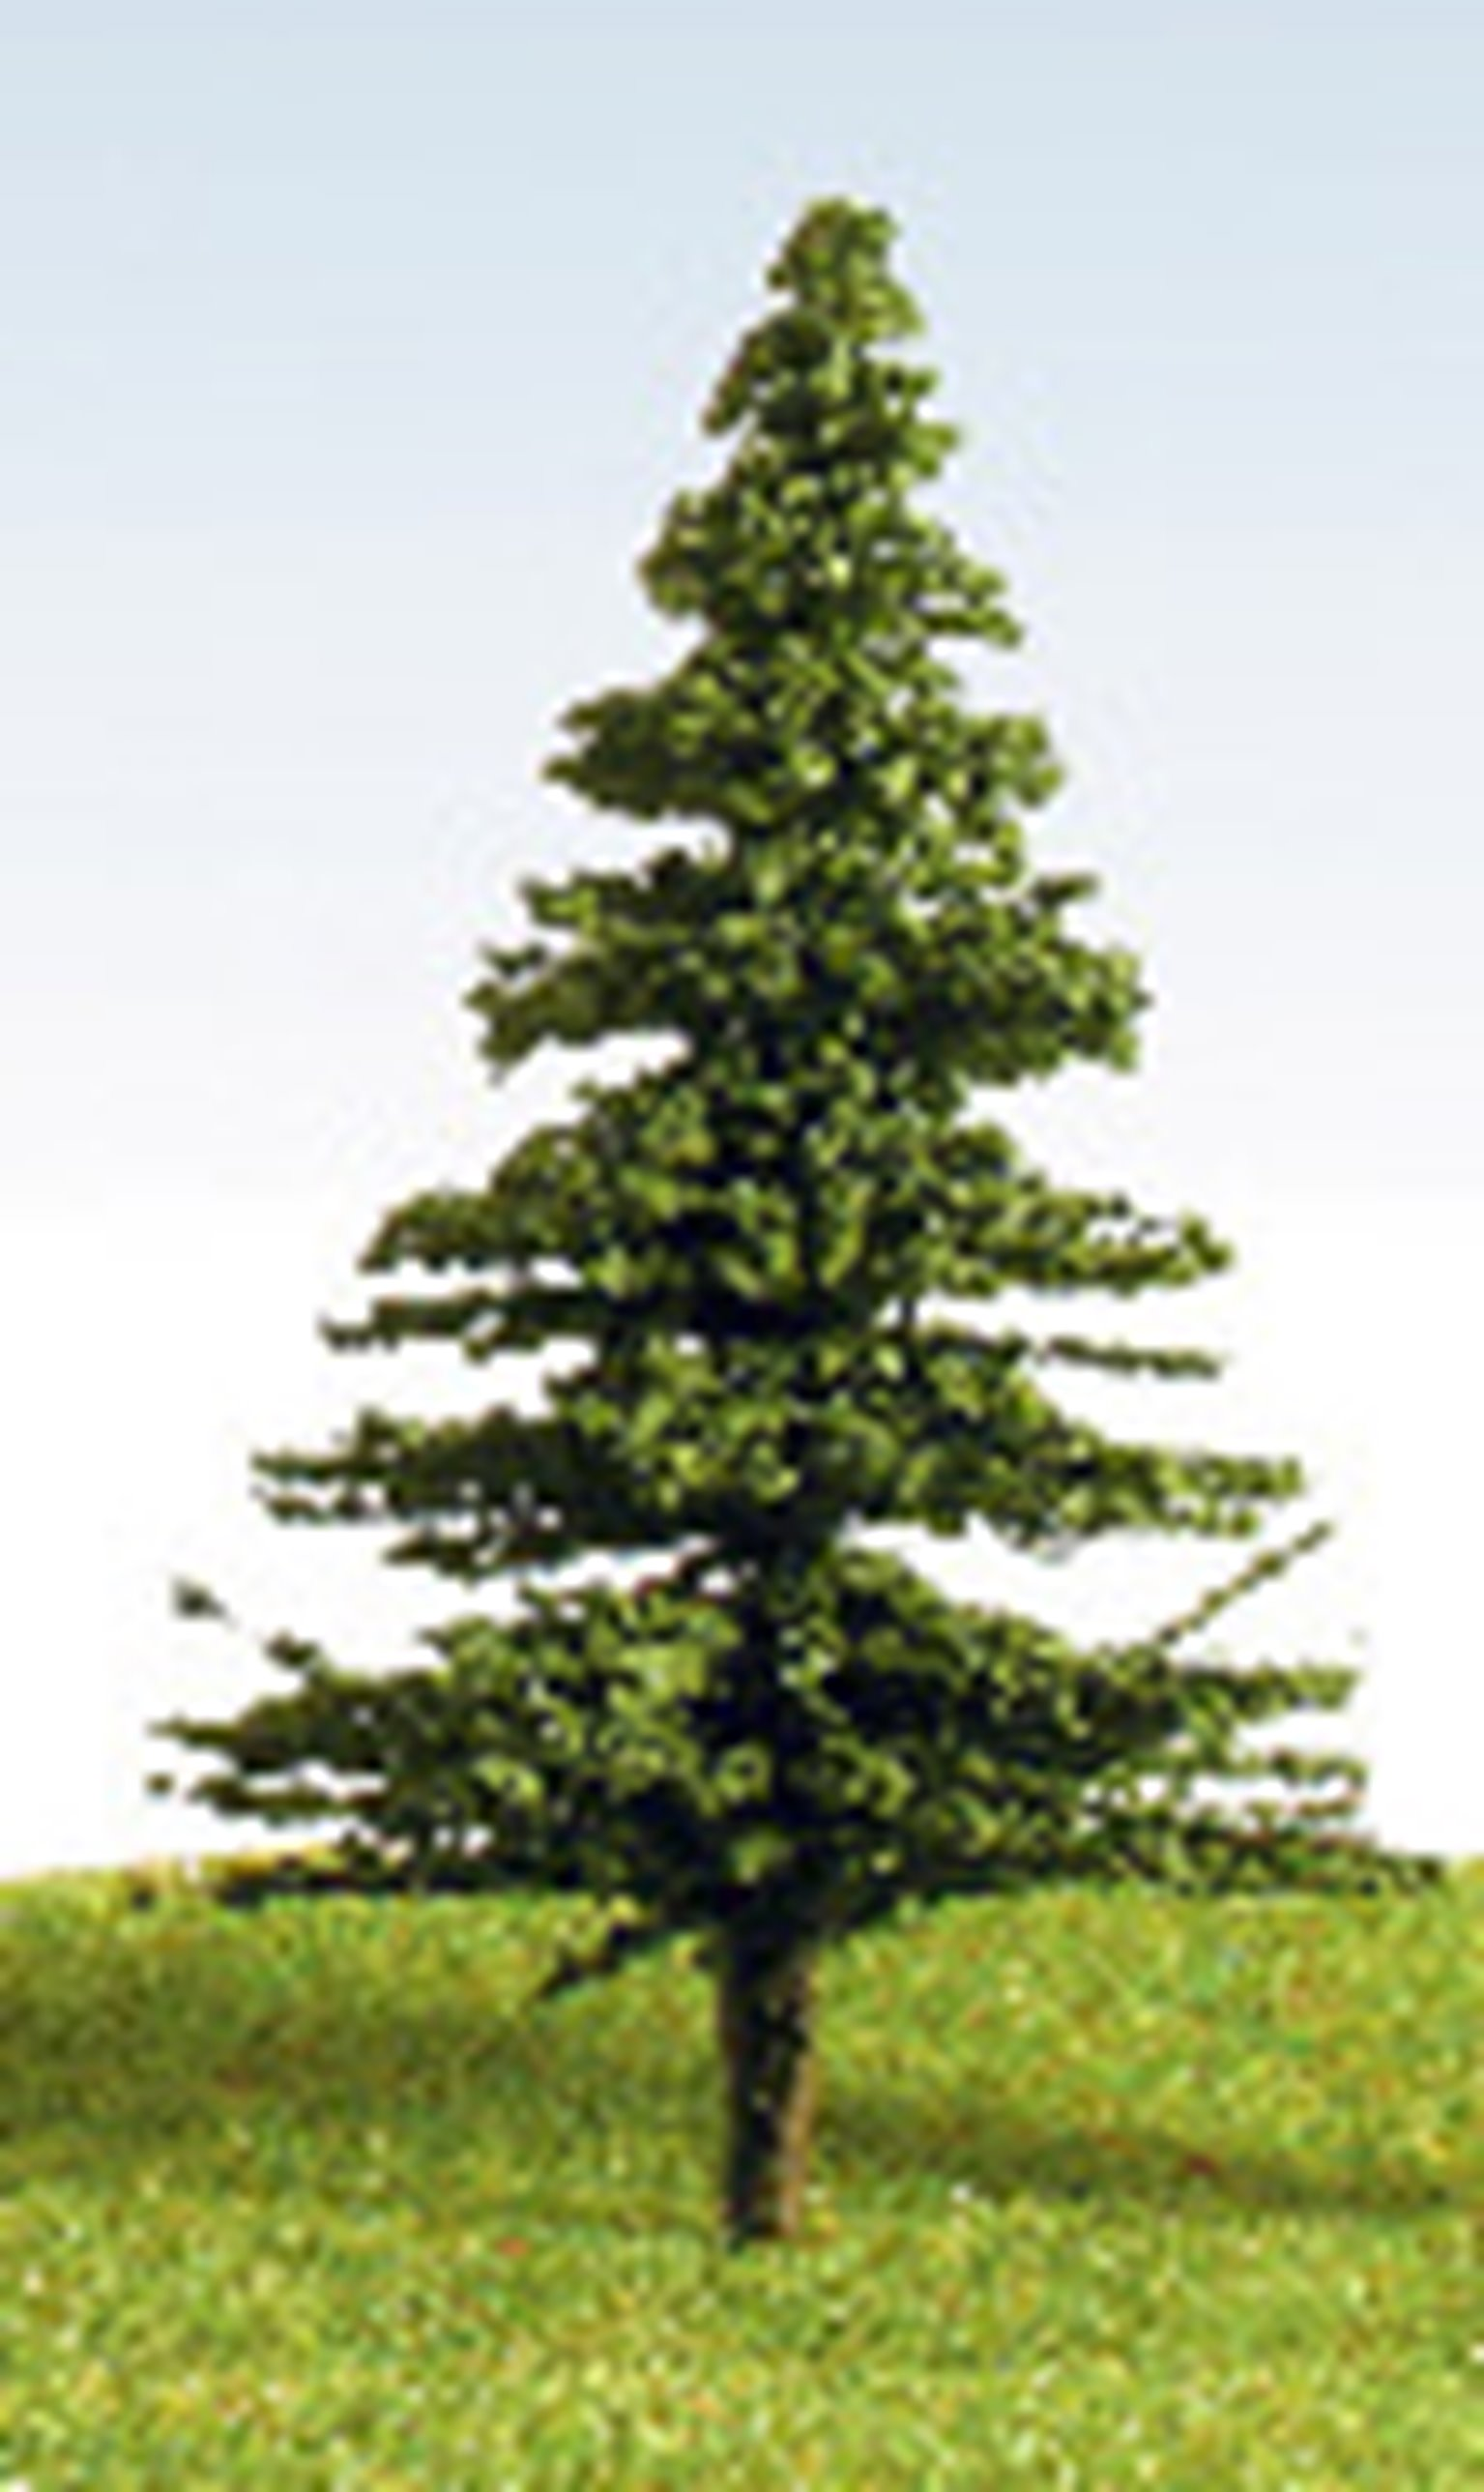 90mm Fir Tree